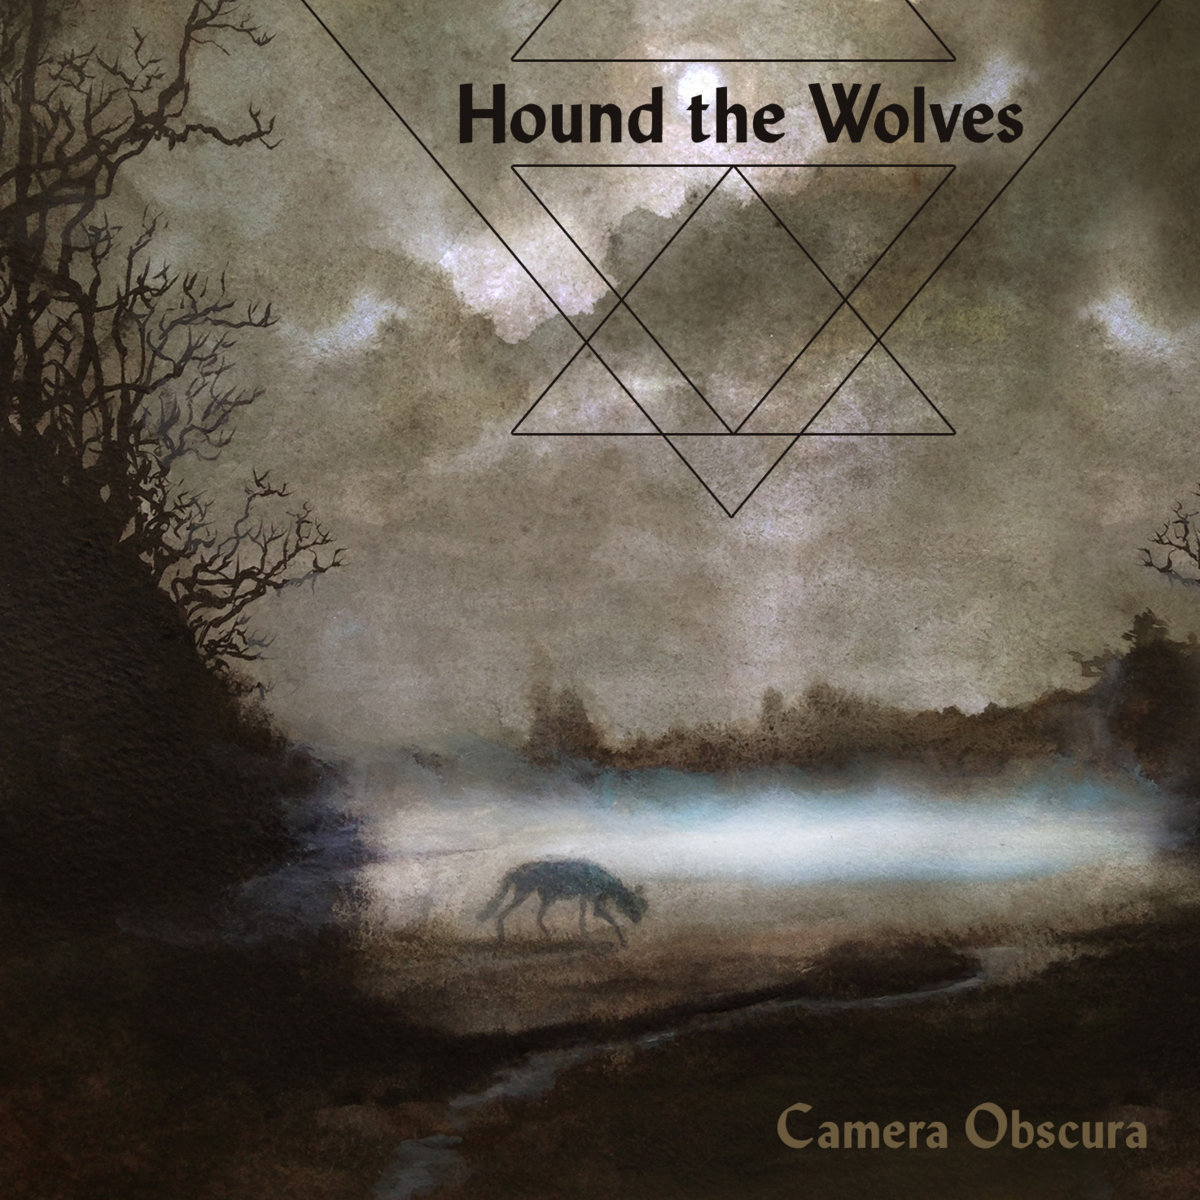 hound the wolves camera obscura